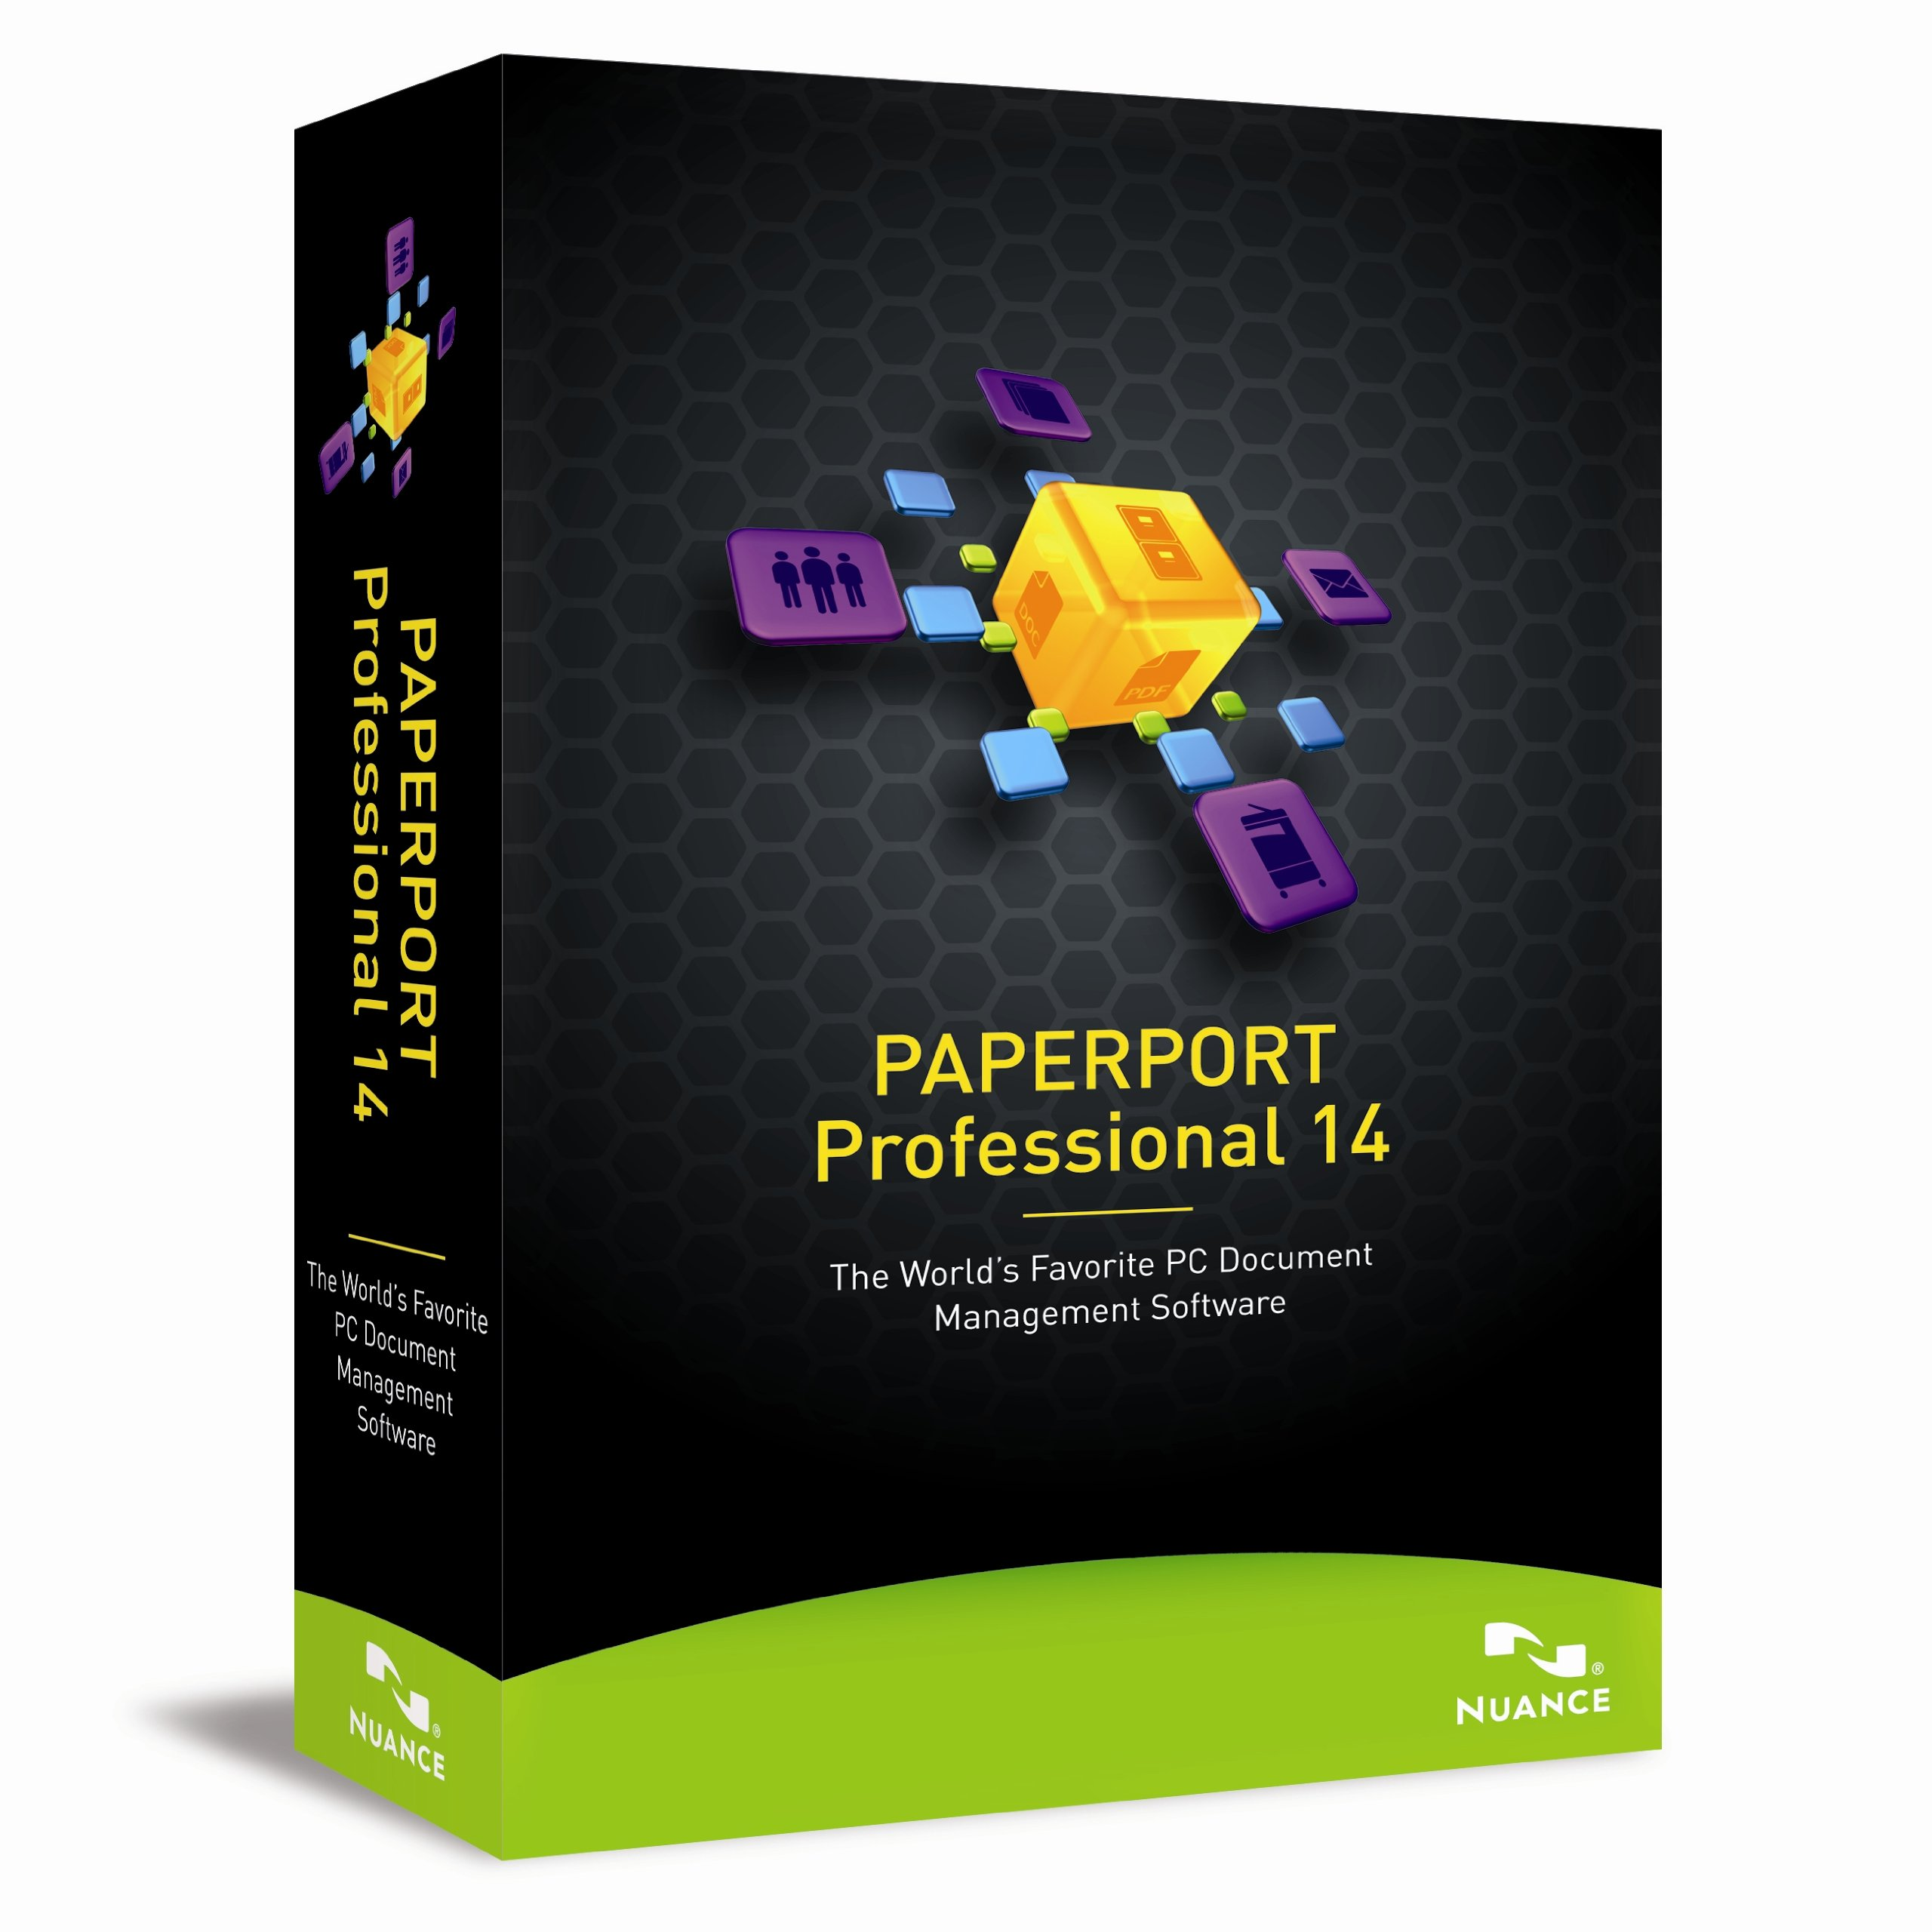 Kofax Paperport Professional 14.0 by Kofax Power PDF